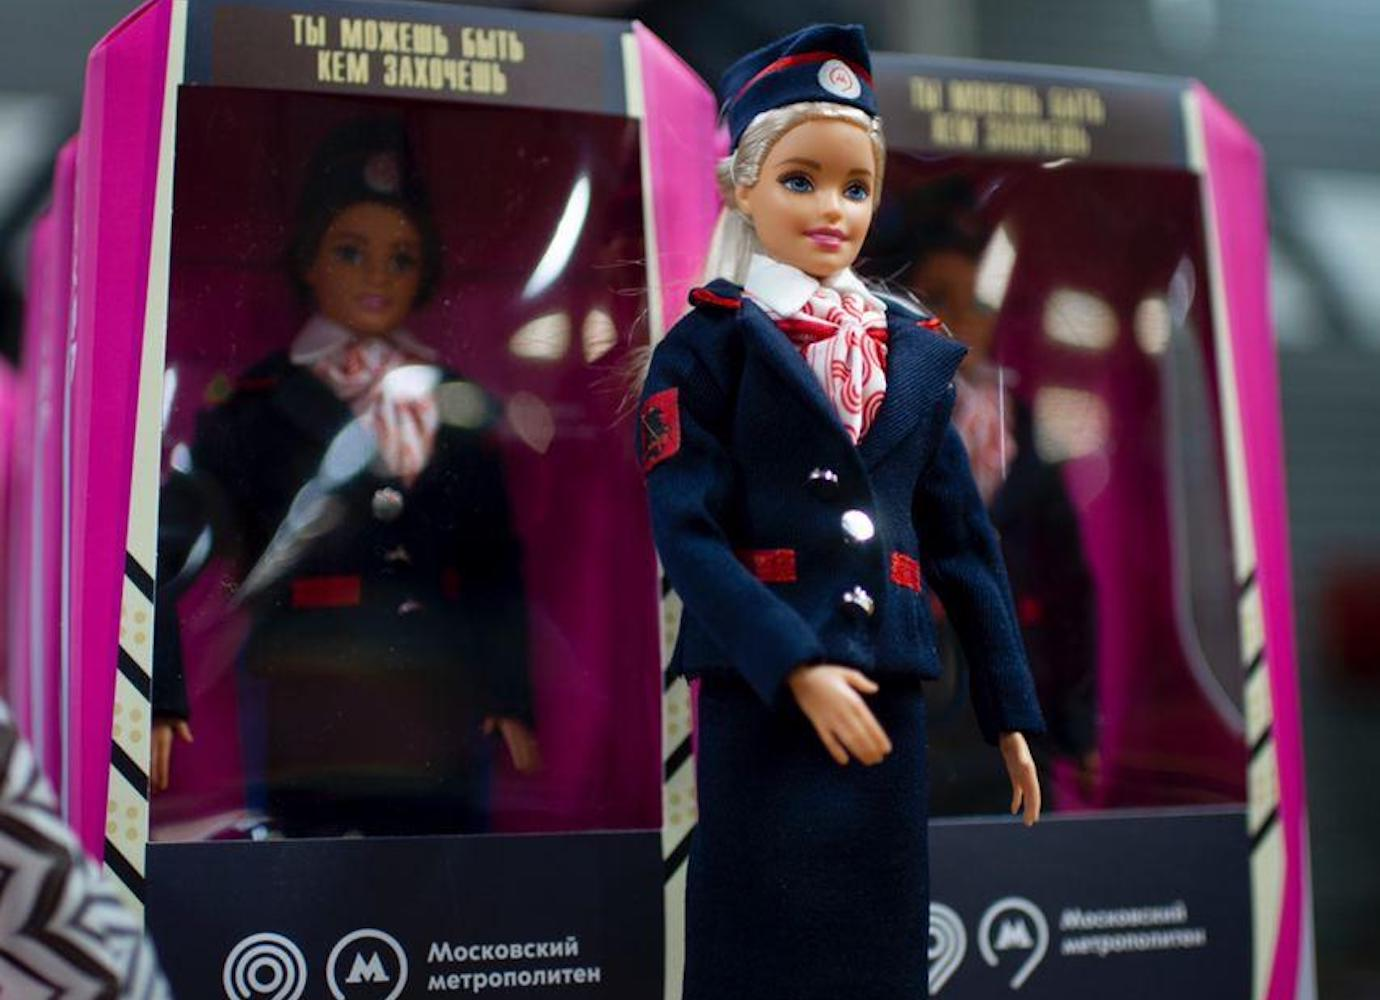 'You can be anything you want to be': Moscow metro celebrates new women drivers by launching its own Barbie doll